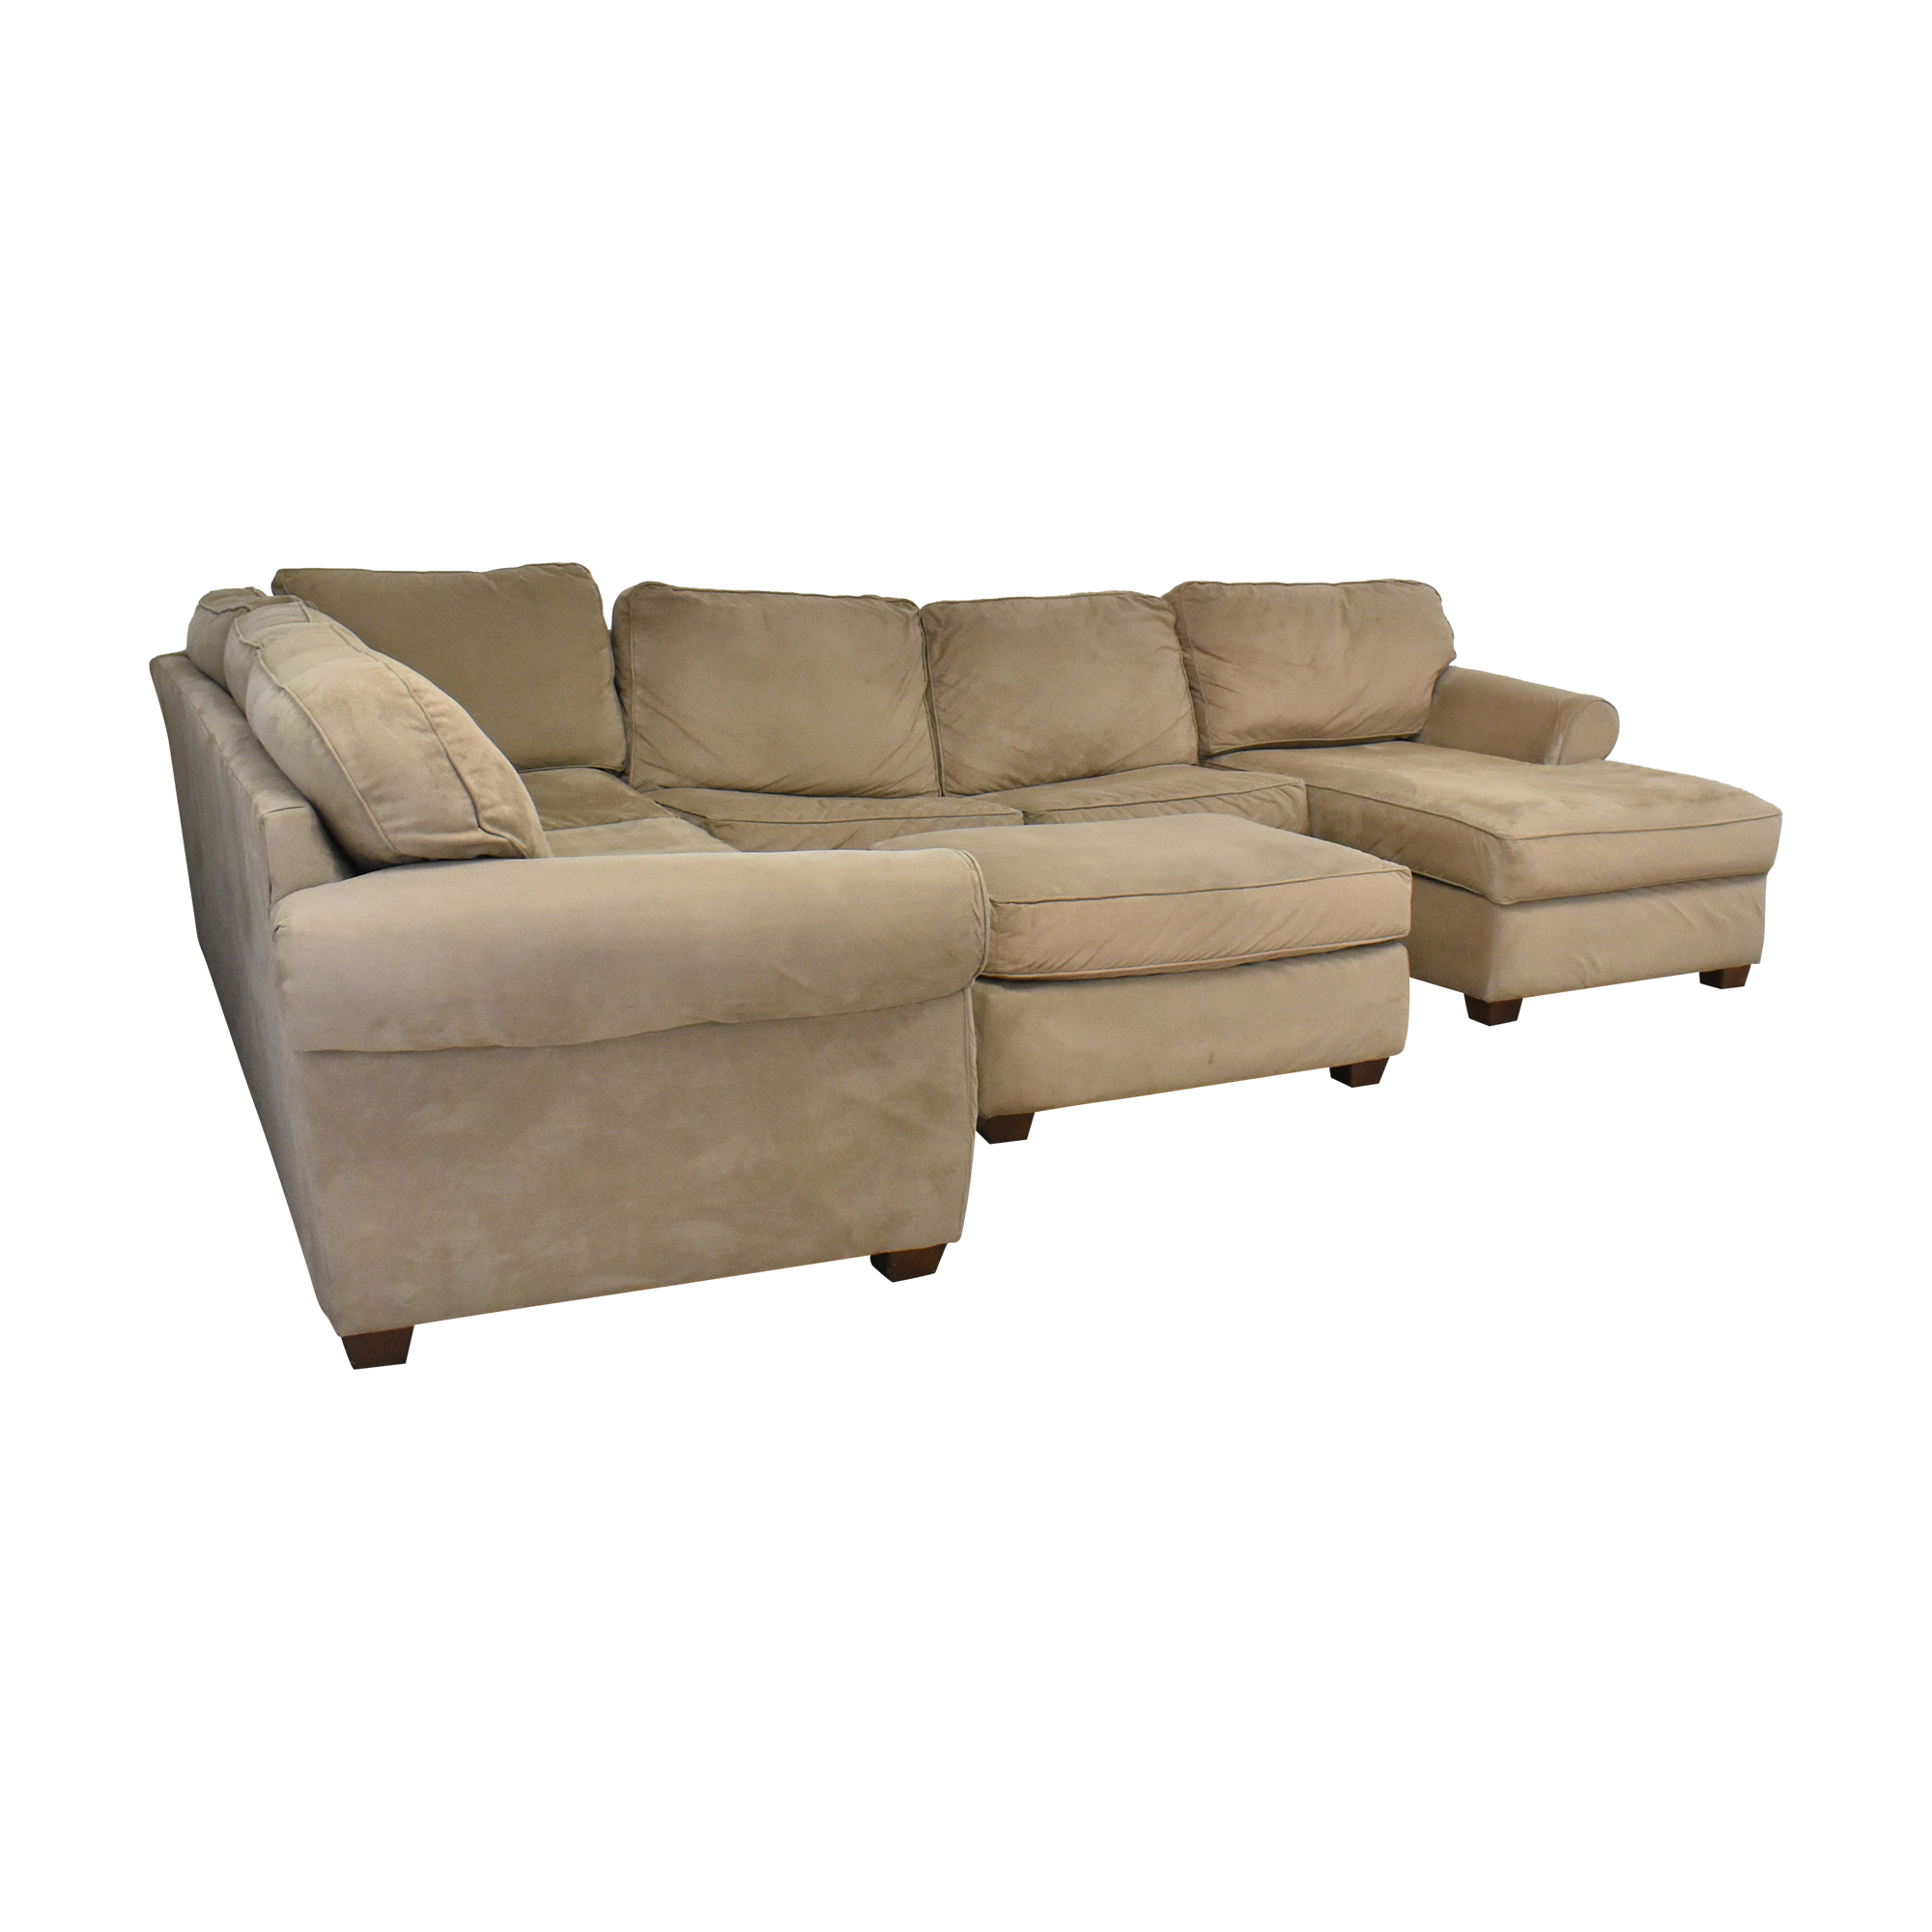 Macy's Macy's Chaise Sectional Sleeper Sofa with Ottoman second hand